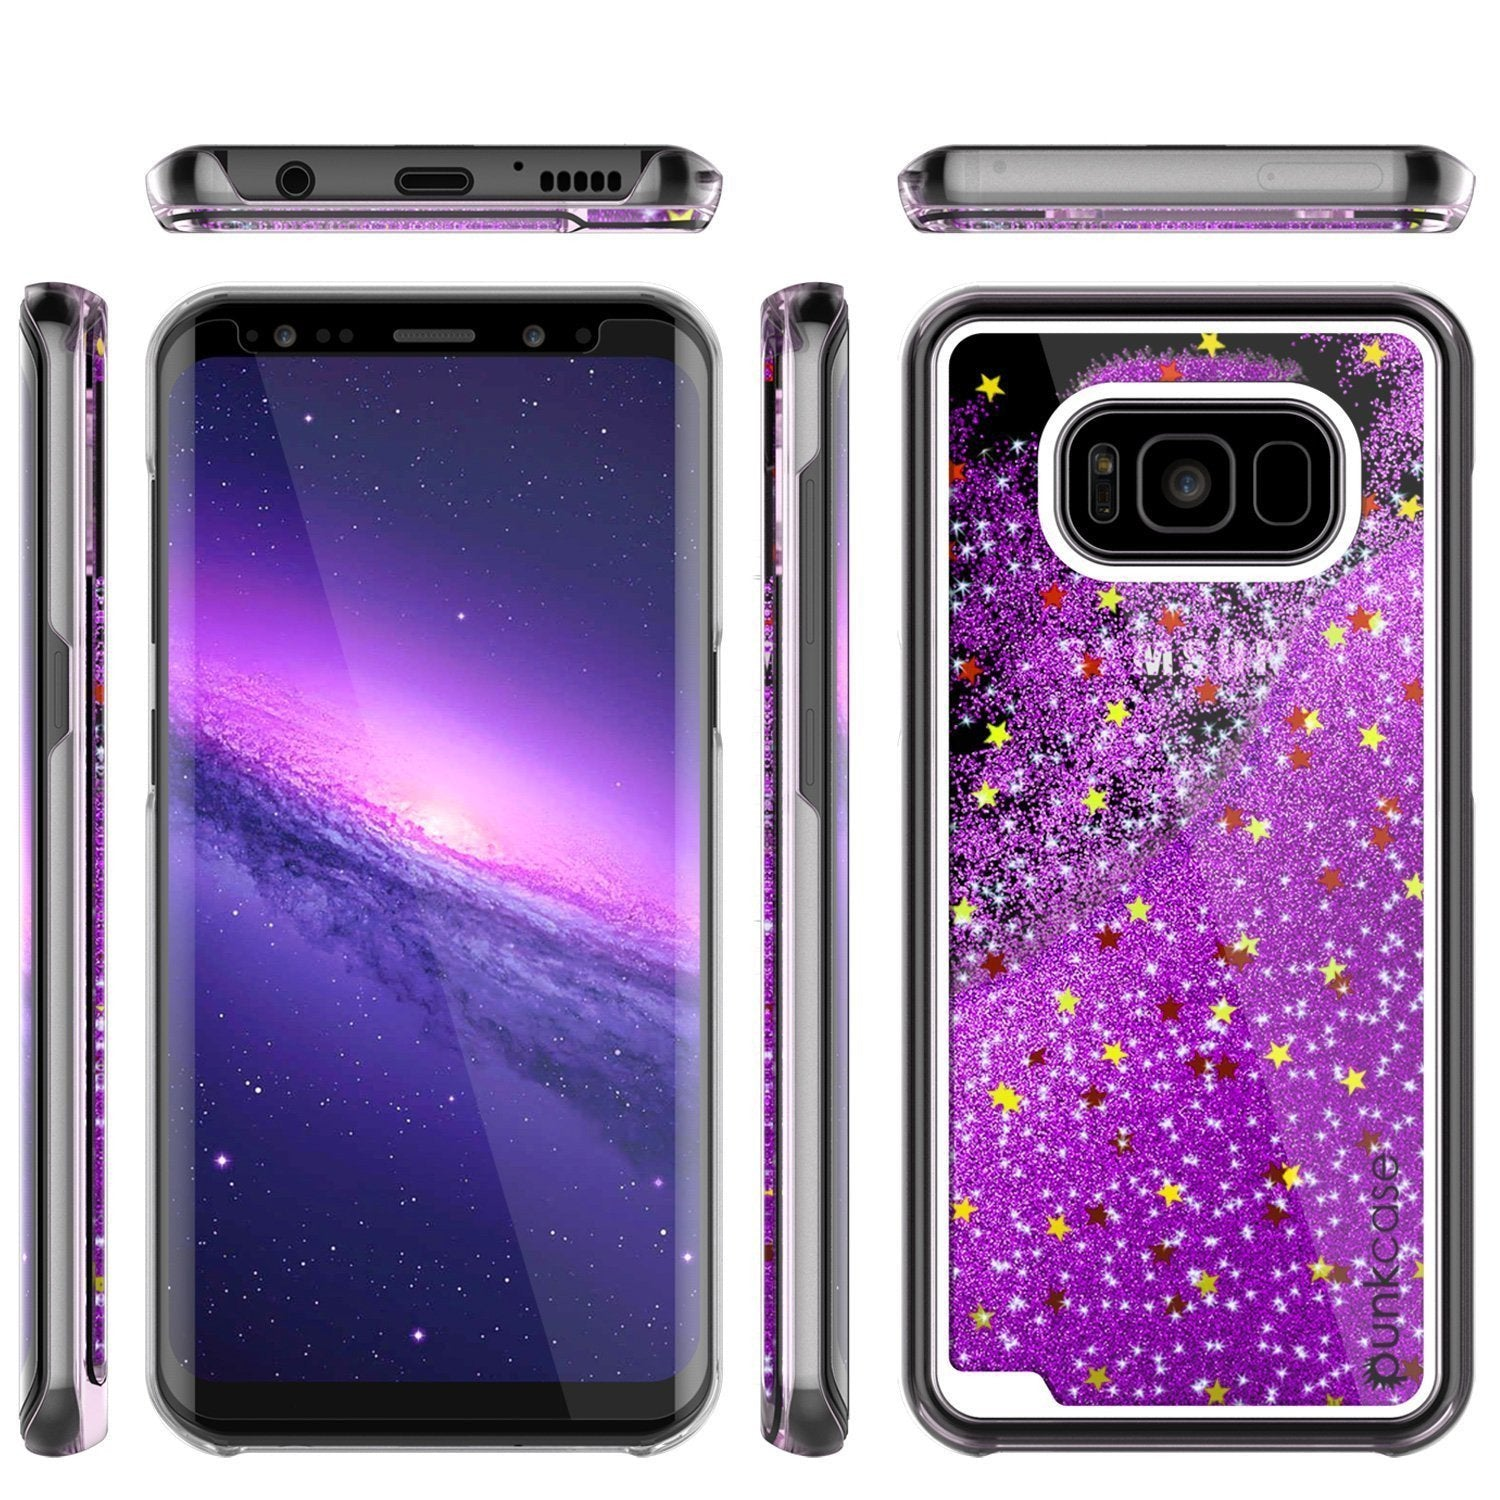 S8 Plus Case, Punkcase [Liquid Series] Protective Dual Layer Floating Glitter Cover with lots of Bling & Sparkle + PunkShield Screen Protector for Samsungs Galaxy S8+ [Purple] - PunkCase NZ